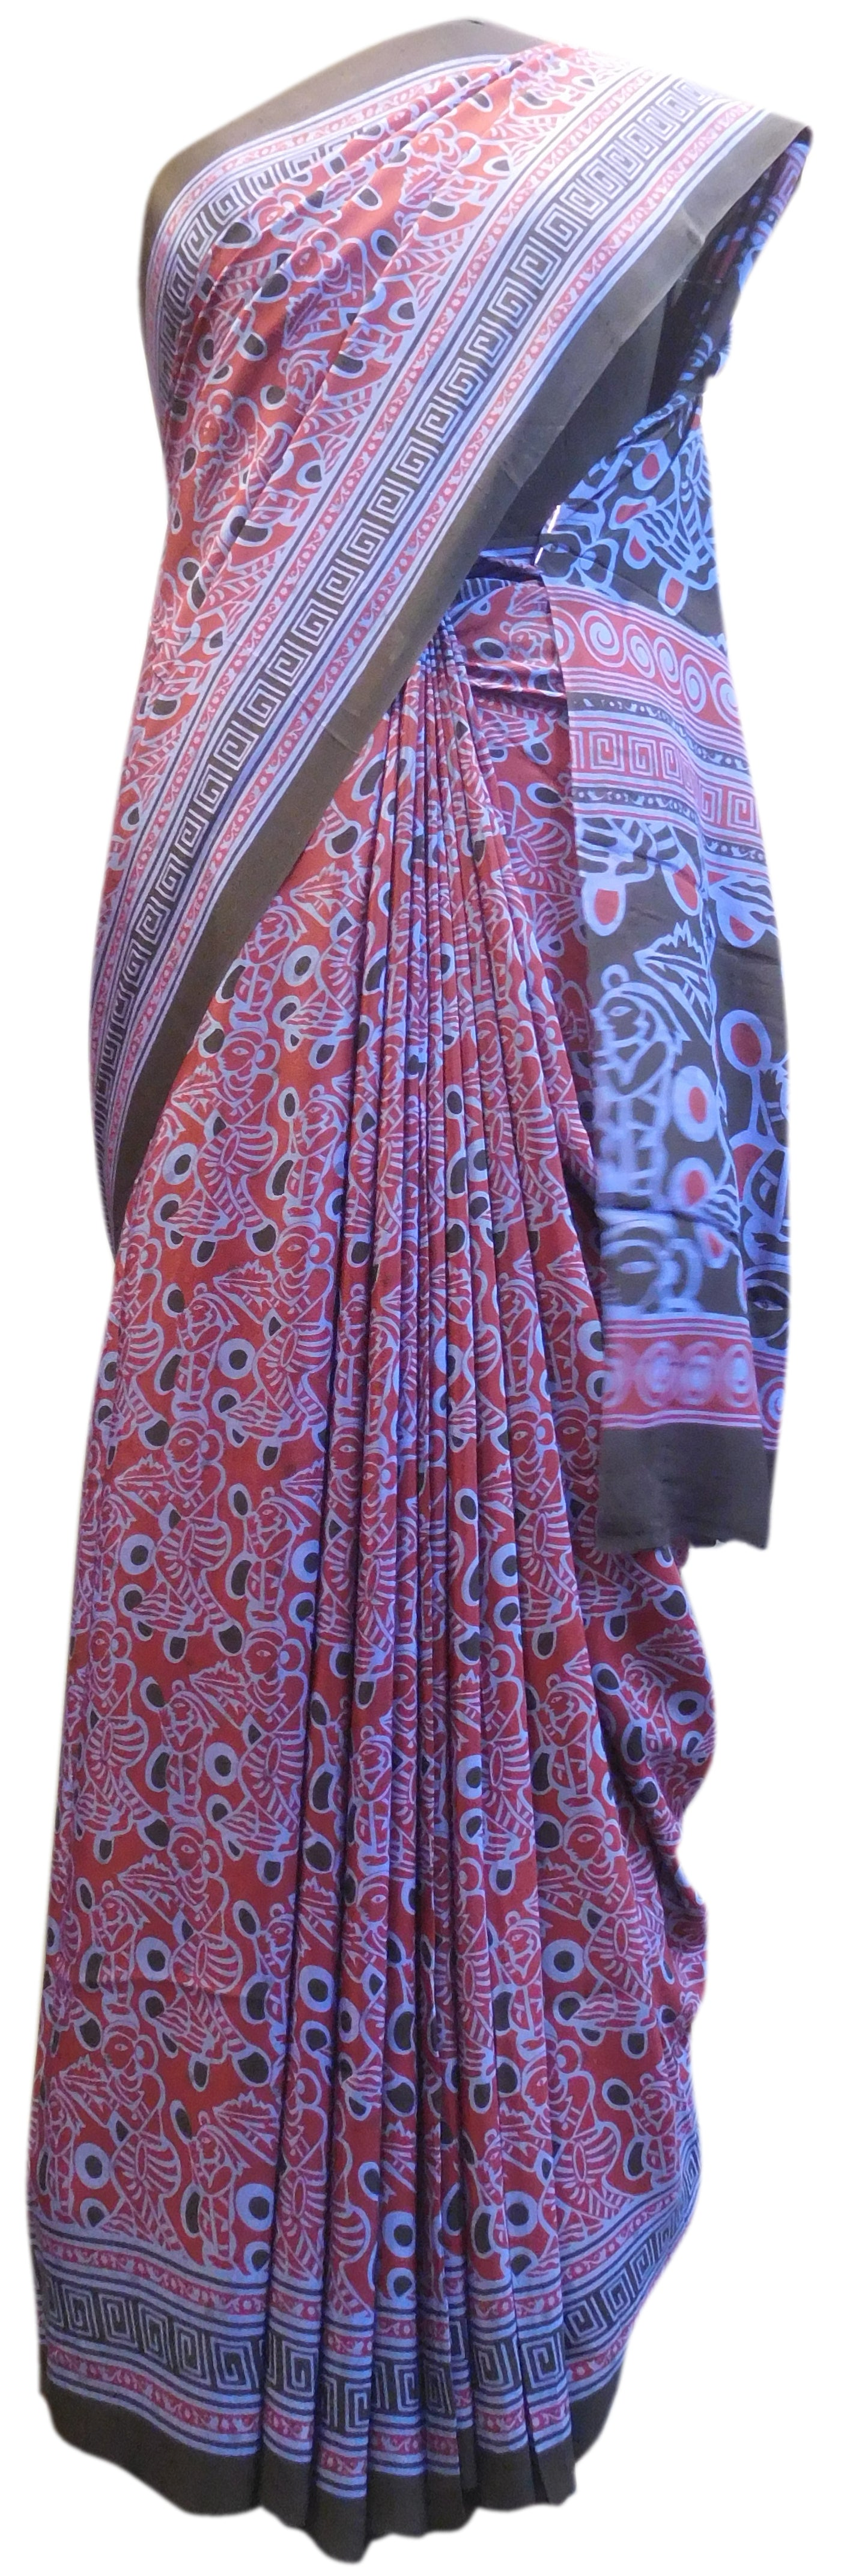 Multicolor Designer Wedding Partywear Pure Crepe Hand Brush Reprinted Kolkata Saree Sari RP158